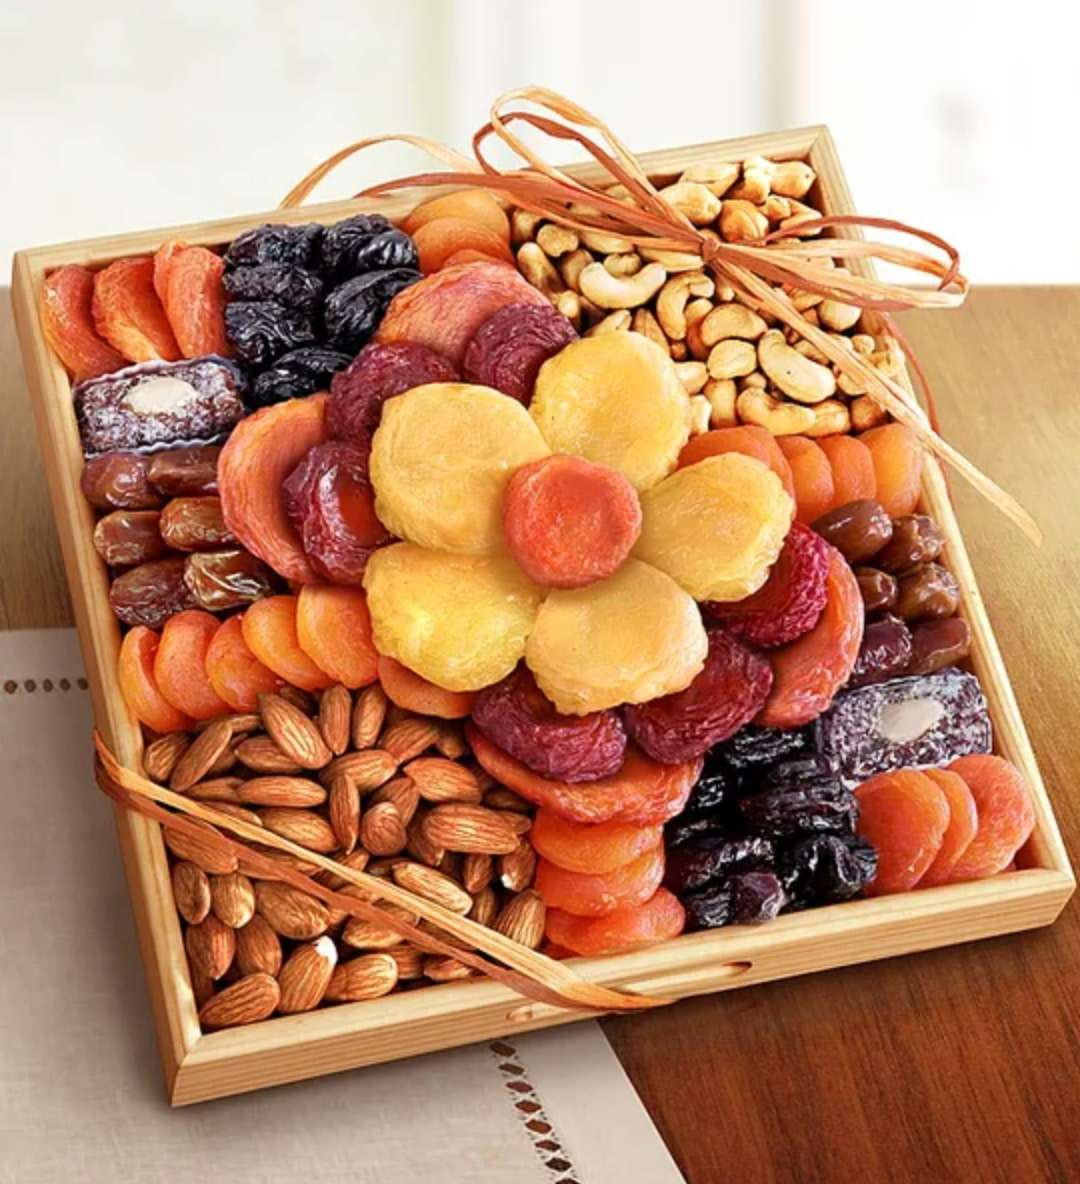 1800-flowers-fruit-and-nuts-case